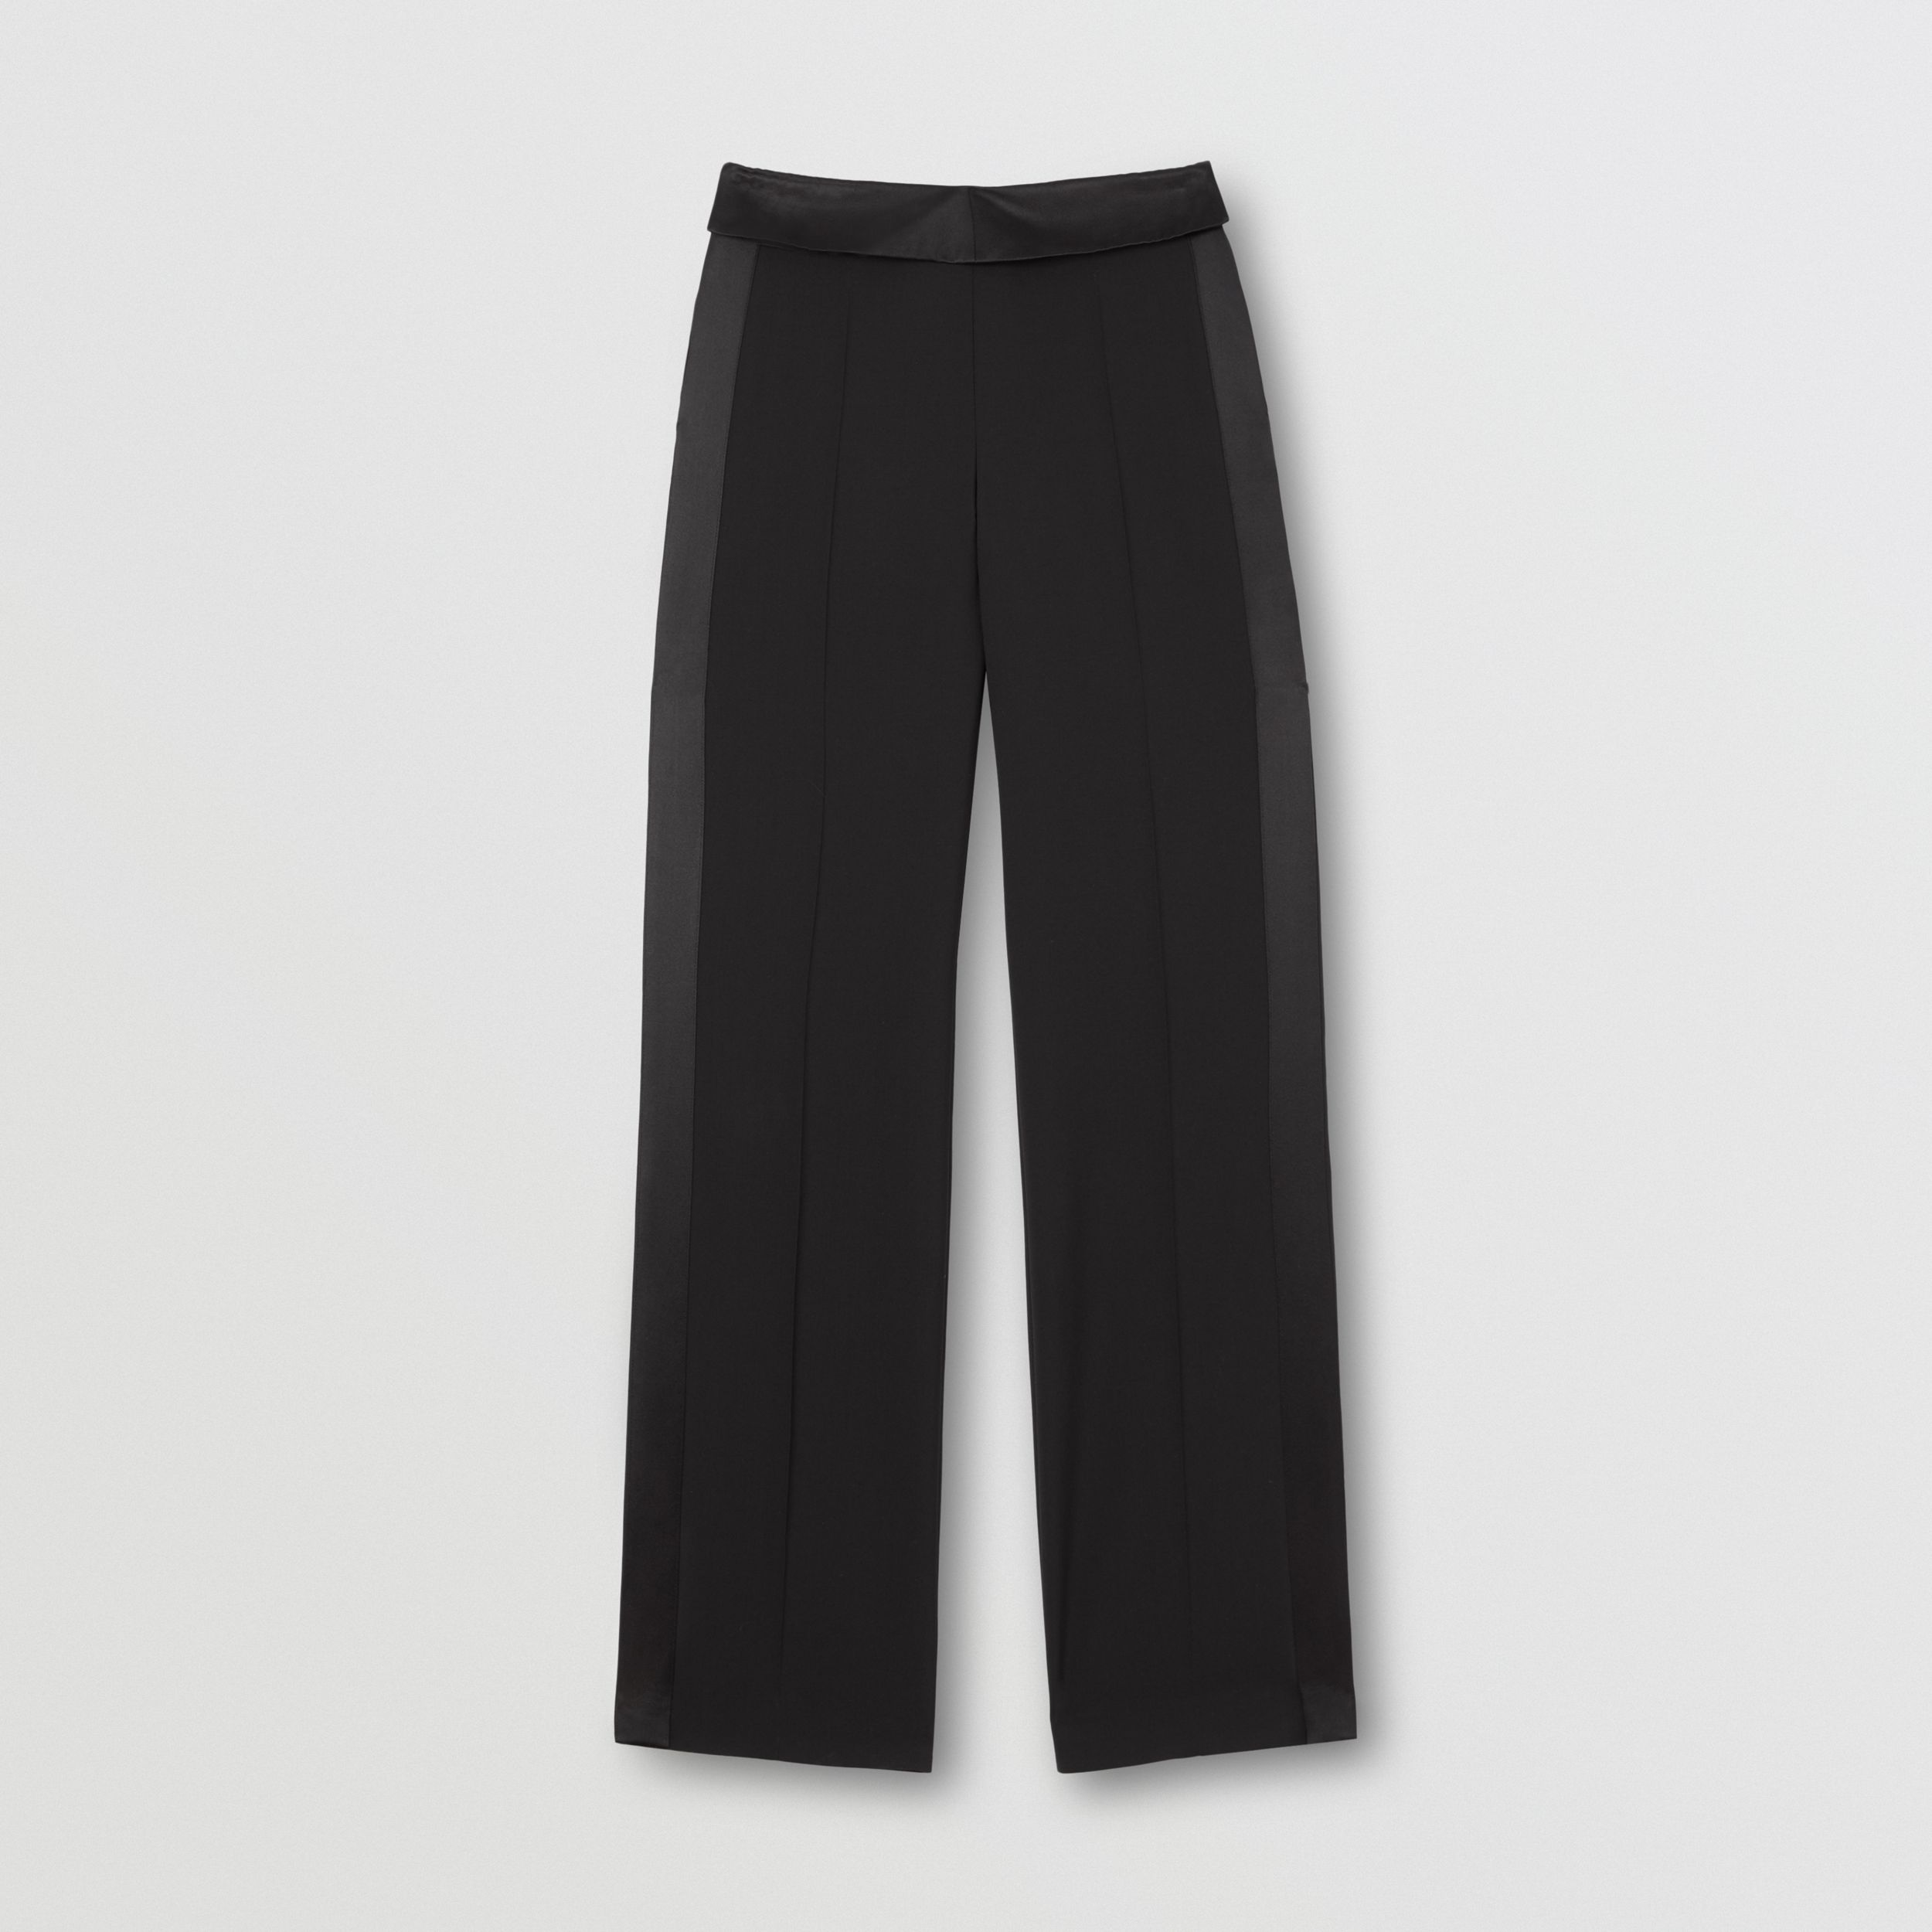 Silk Satin Trim Tumbled Wool Tailored Trousers in Black - Women | Burberry - 4